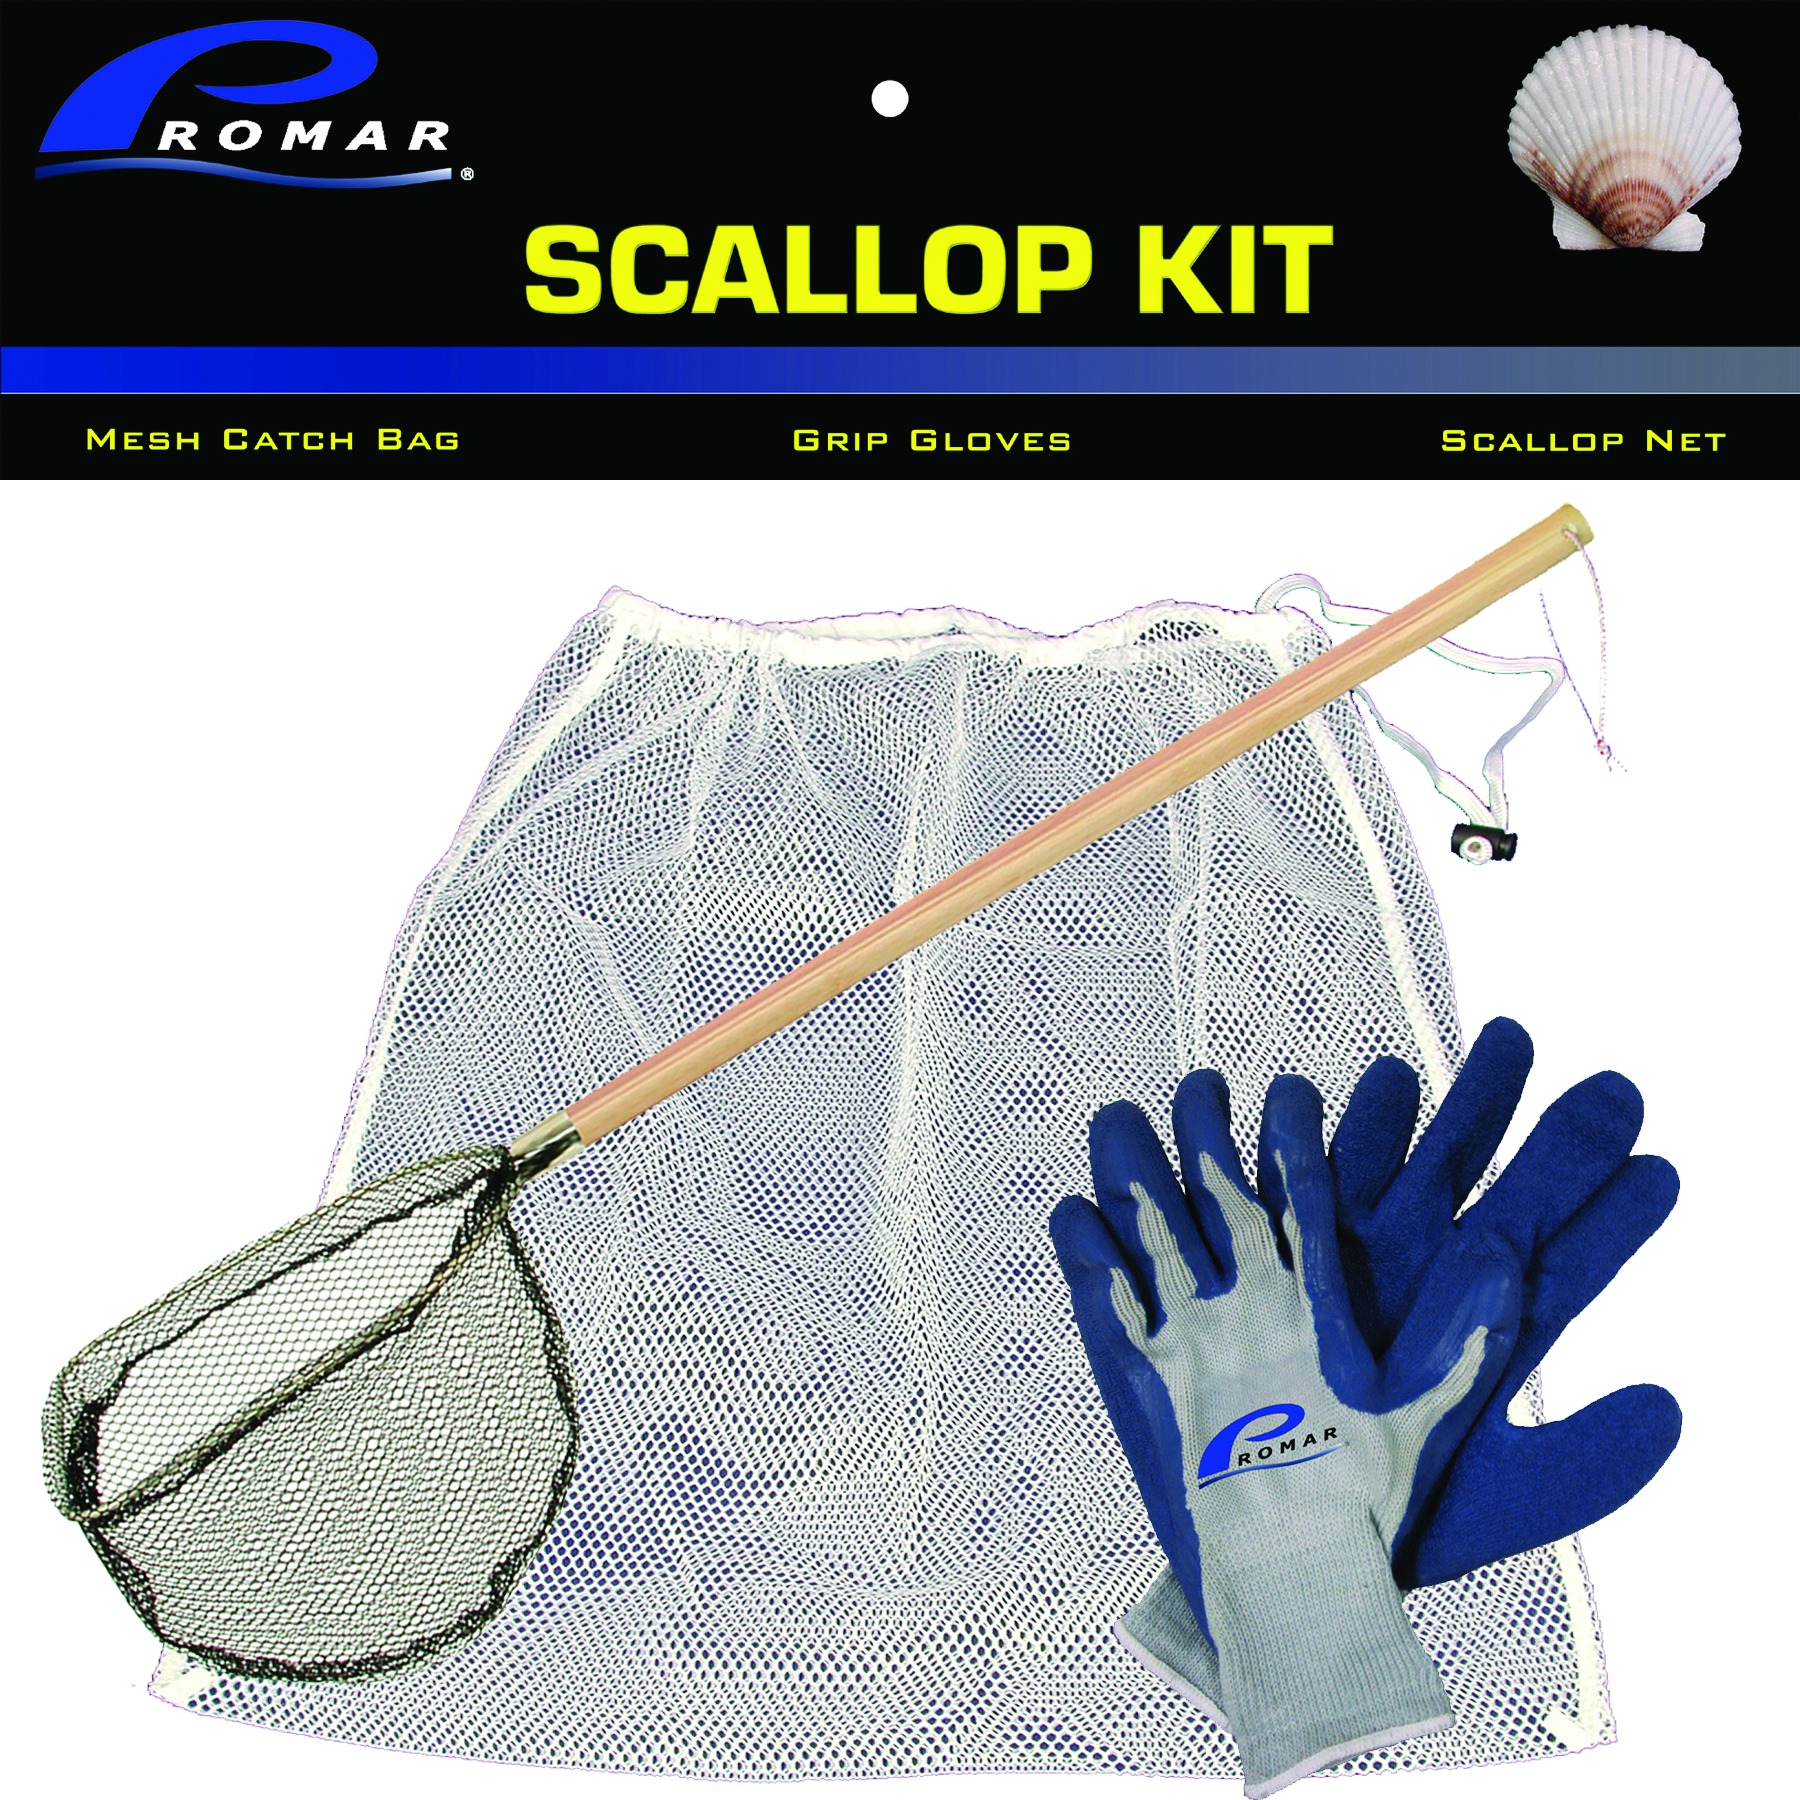 Folsom Of Florida Scallop Kit-chum Bag-bait Net-gloves